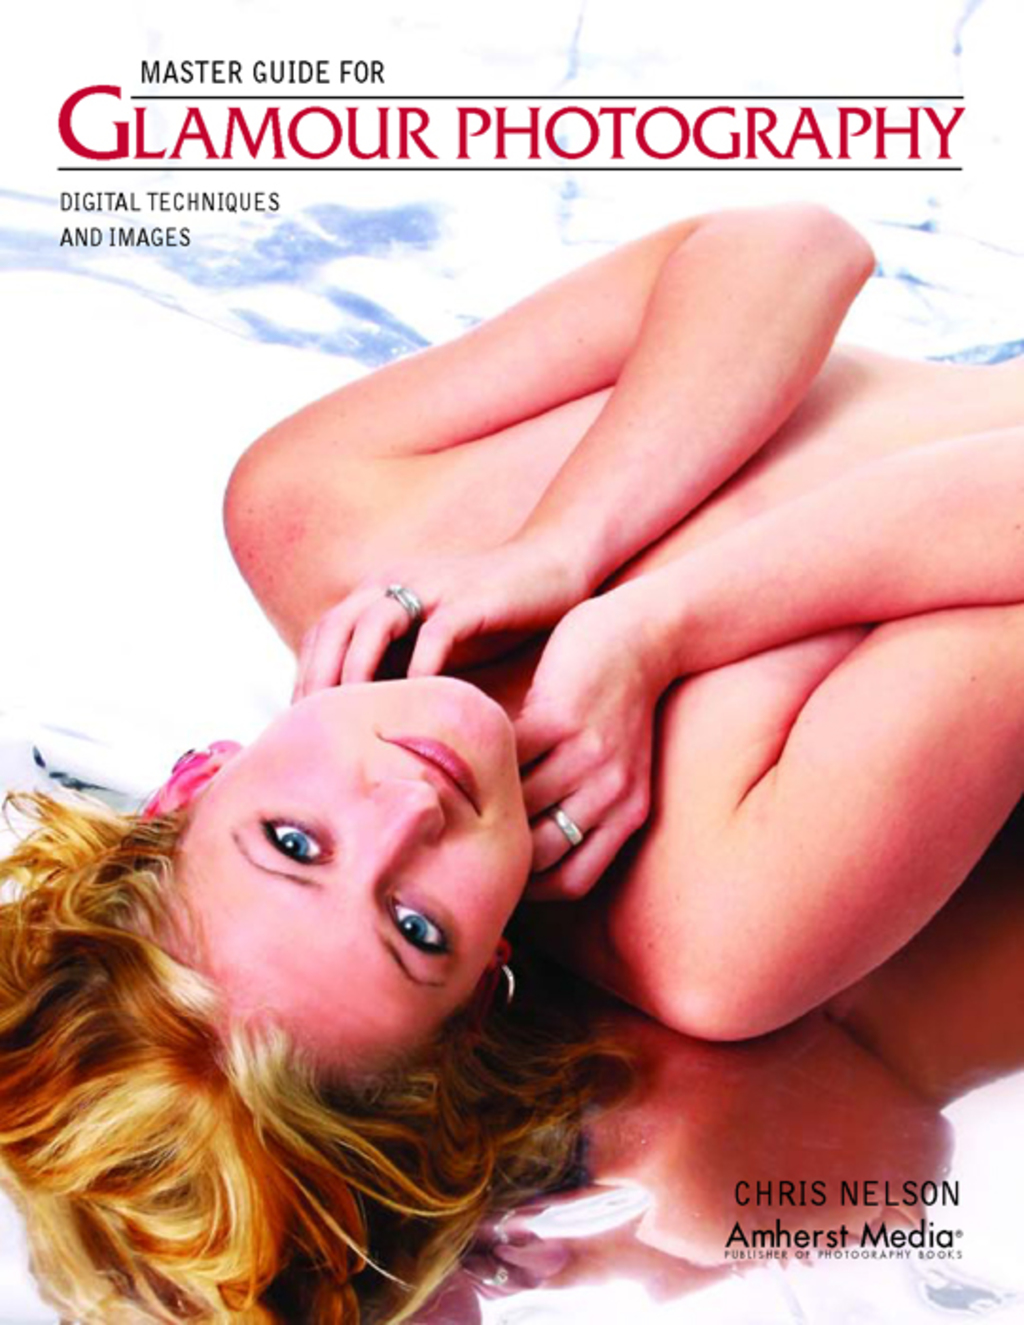 Master Guide for Glamour Photography (ebook) eBooks